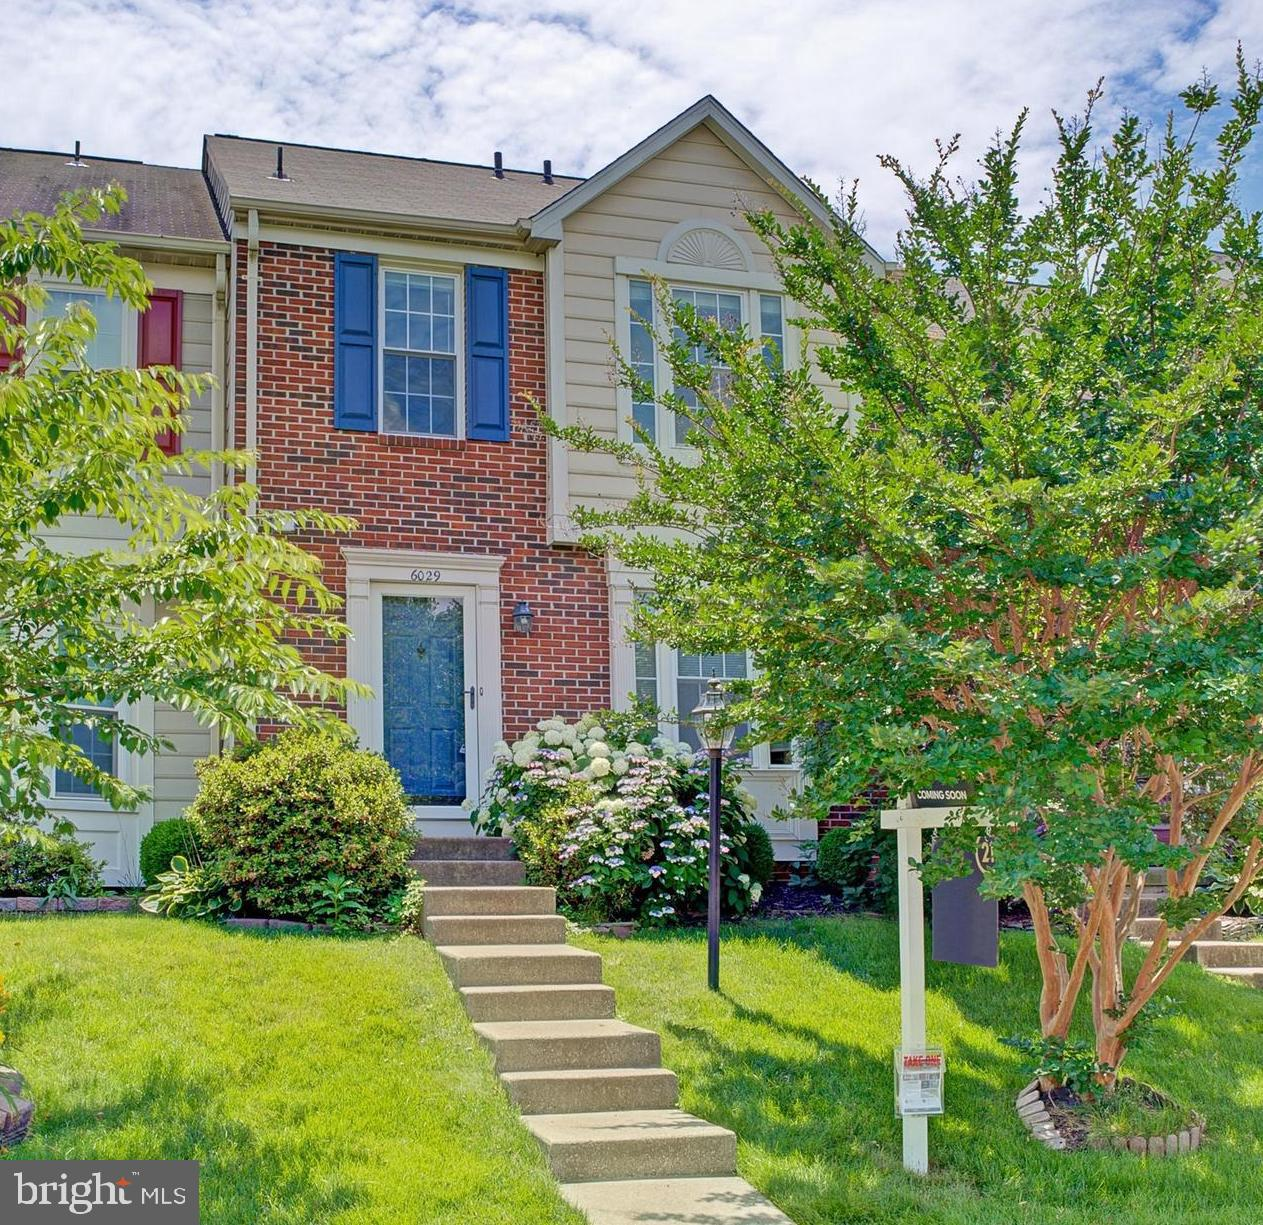 ***6/23 Open House Cancelled***Sunny and bright TH in the heart of Kingstowne. Hardwood floors throughout main level, brand new carpet on lower level, freshly painted and ready for new owners. Walk up lower level has full bath and a large storage room.                                            Updates include: -New roof with 10 year warranty June 2017~ 1st floor hardwoods ~ August 2015~New dishwasher March 2019~New refrigerator May 2019~New hot water heater w/ 6 year warranty June 2019~New basement carpet June 2019